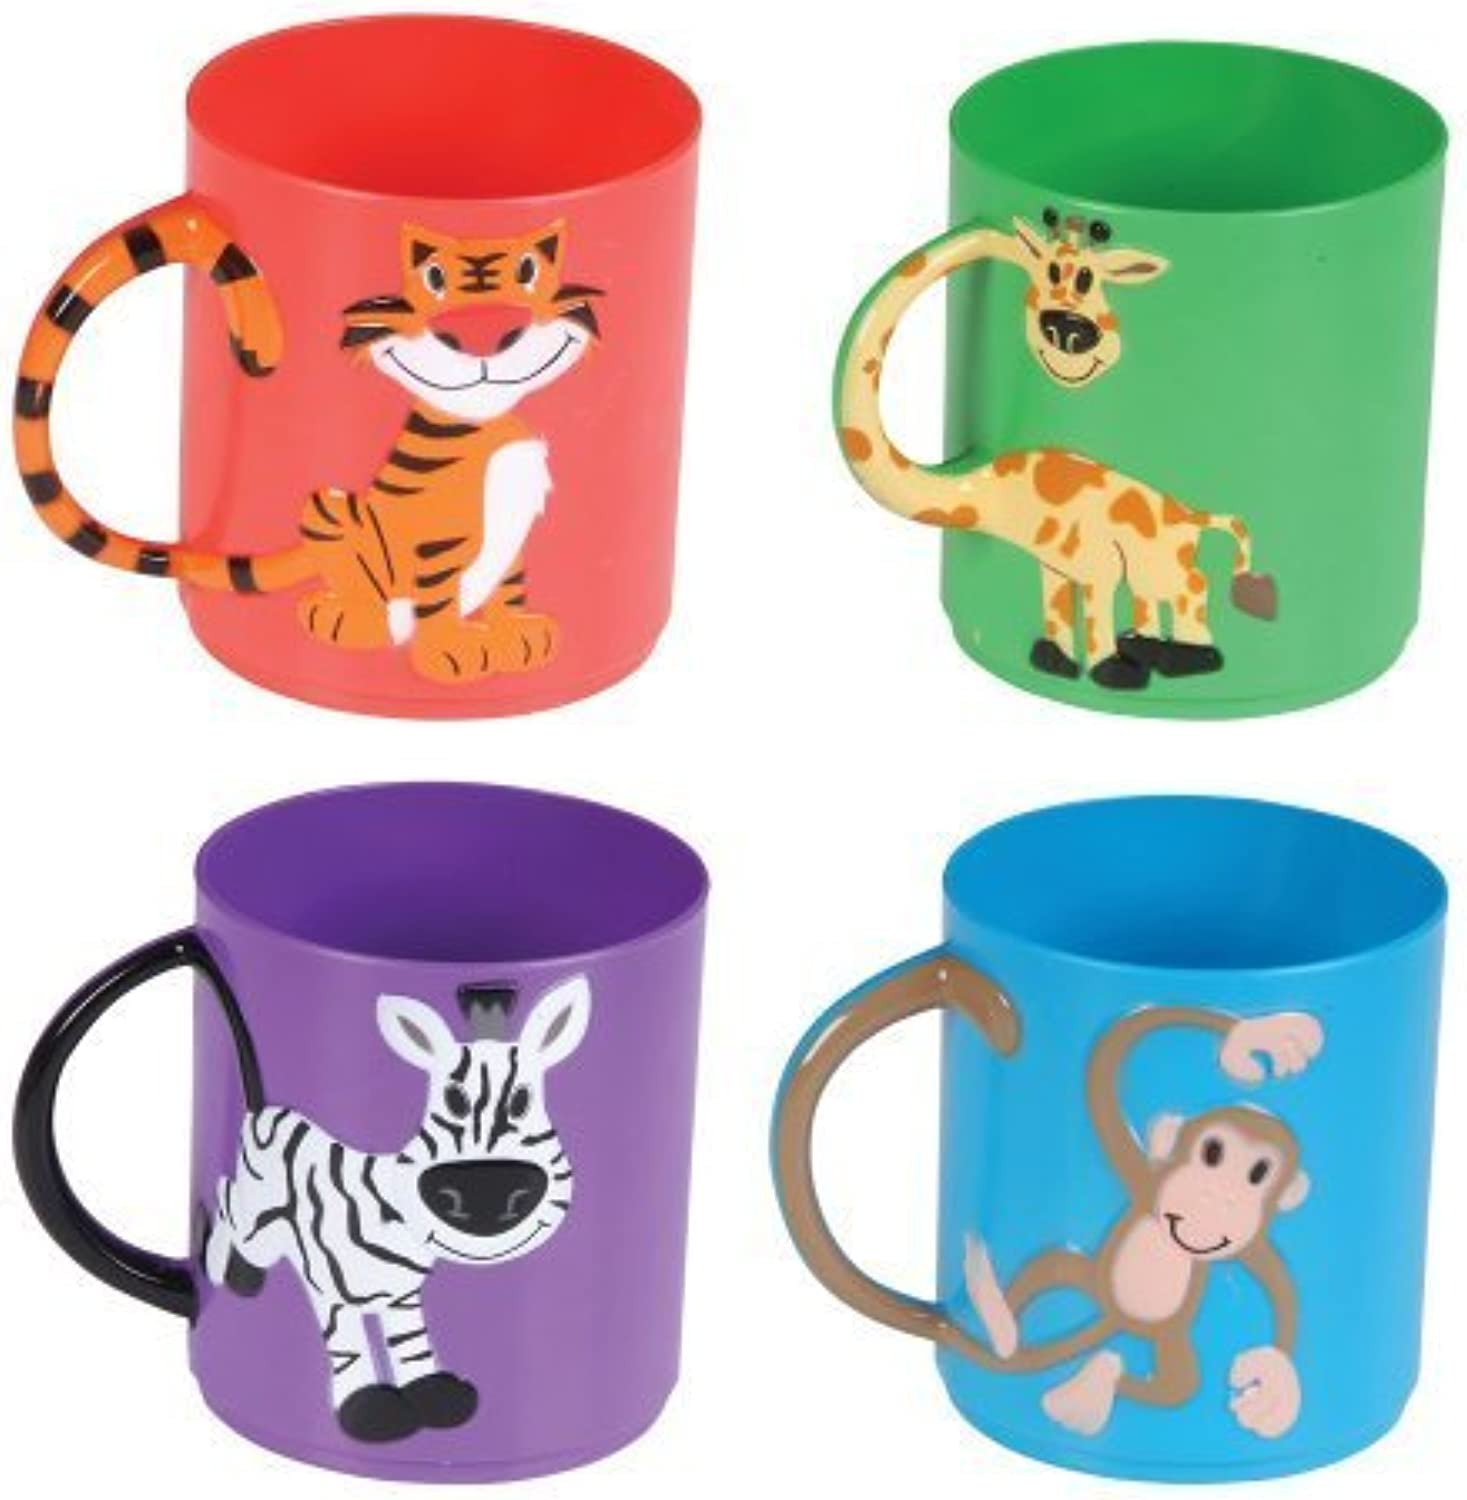 Assorted color Animal Mugs (1 dz) by Rinco